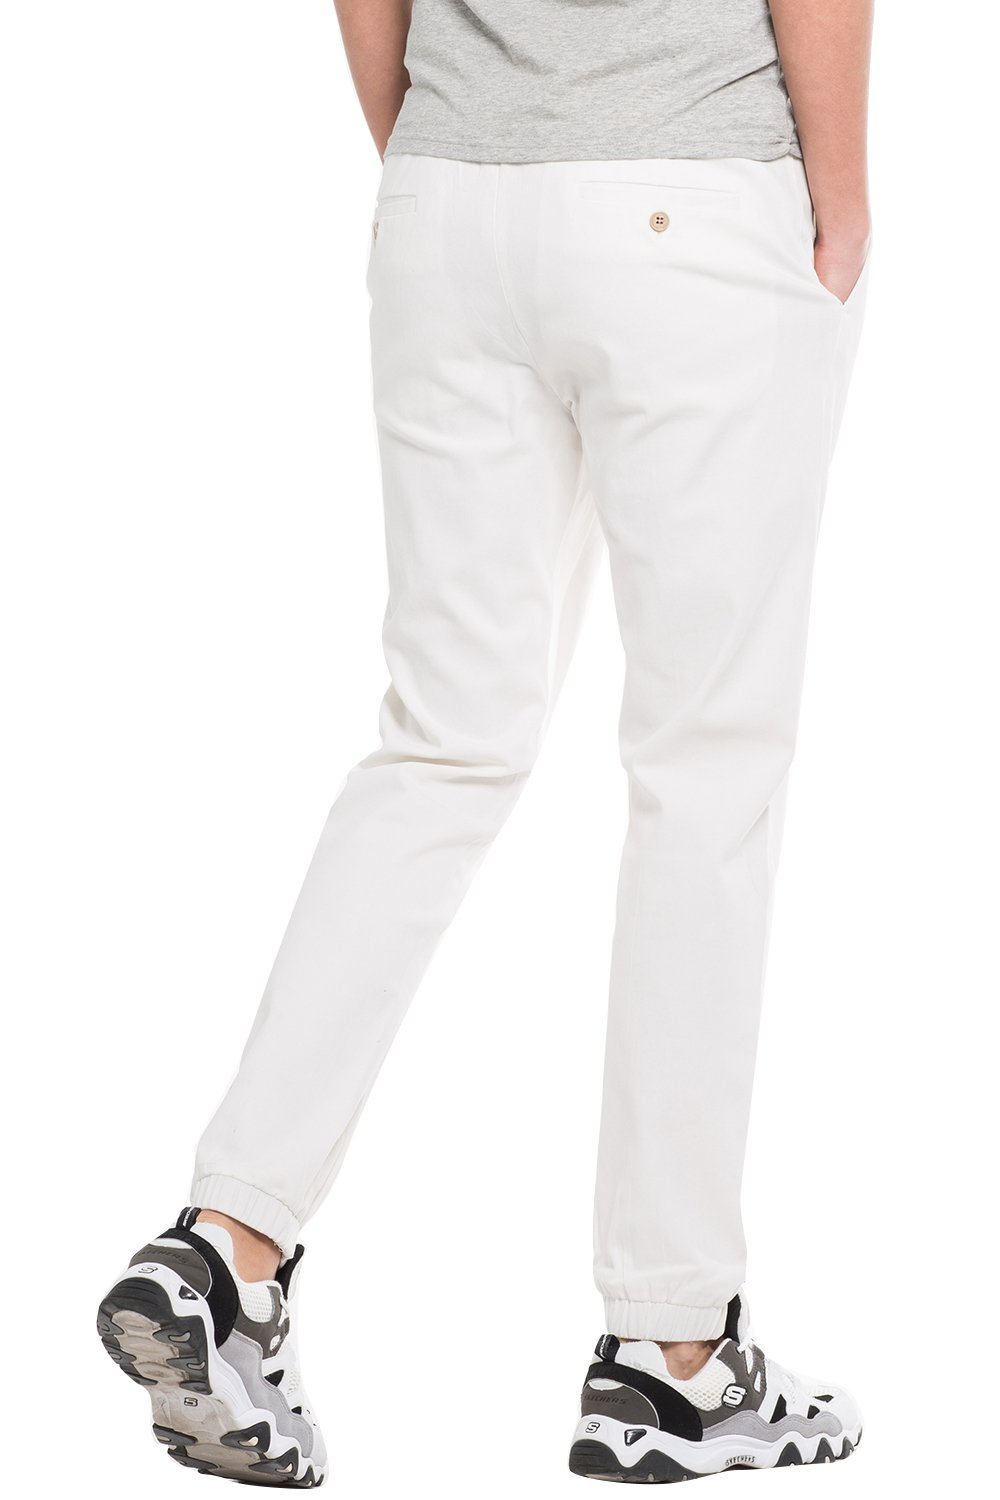 INFLATION Men's Stretchy Casual Jogger Pants  Blend Combed Cotton Formal Elastic Waist Trousers Dress Pants White US SIZE L by INFLATION (Image #3)